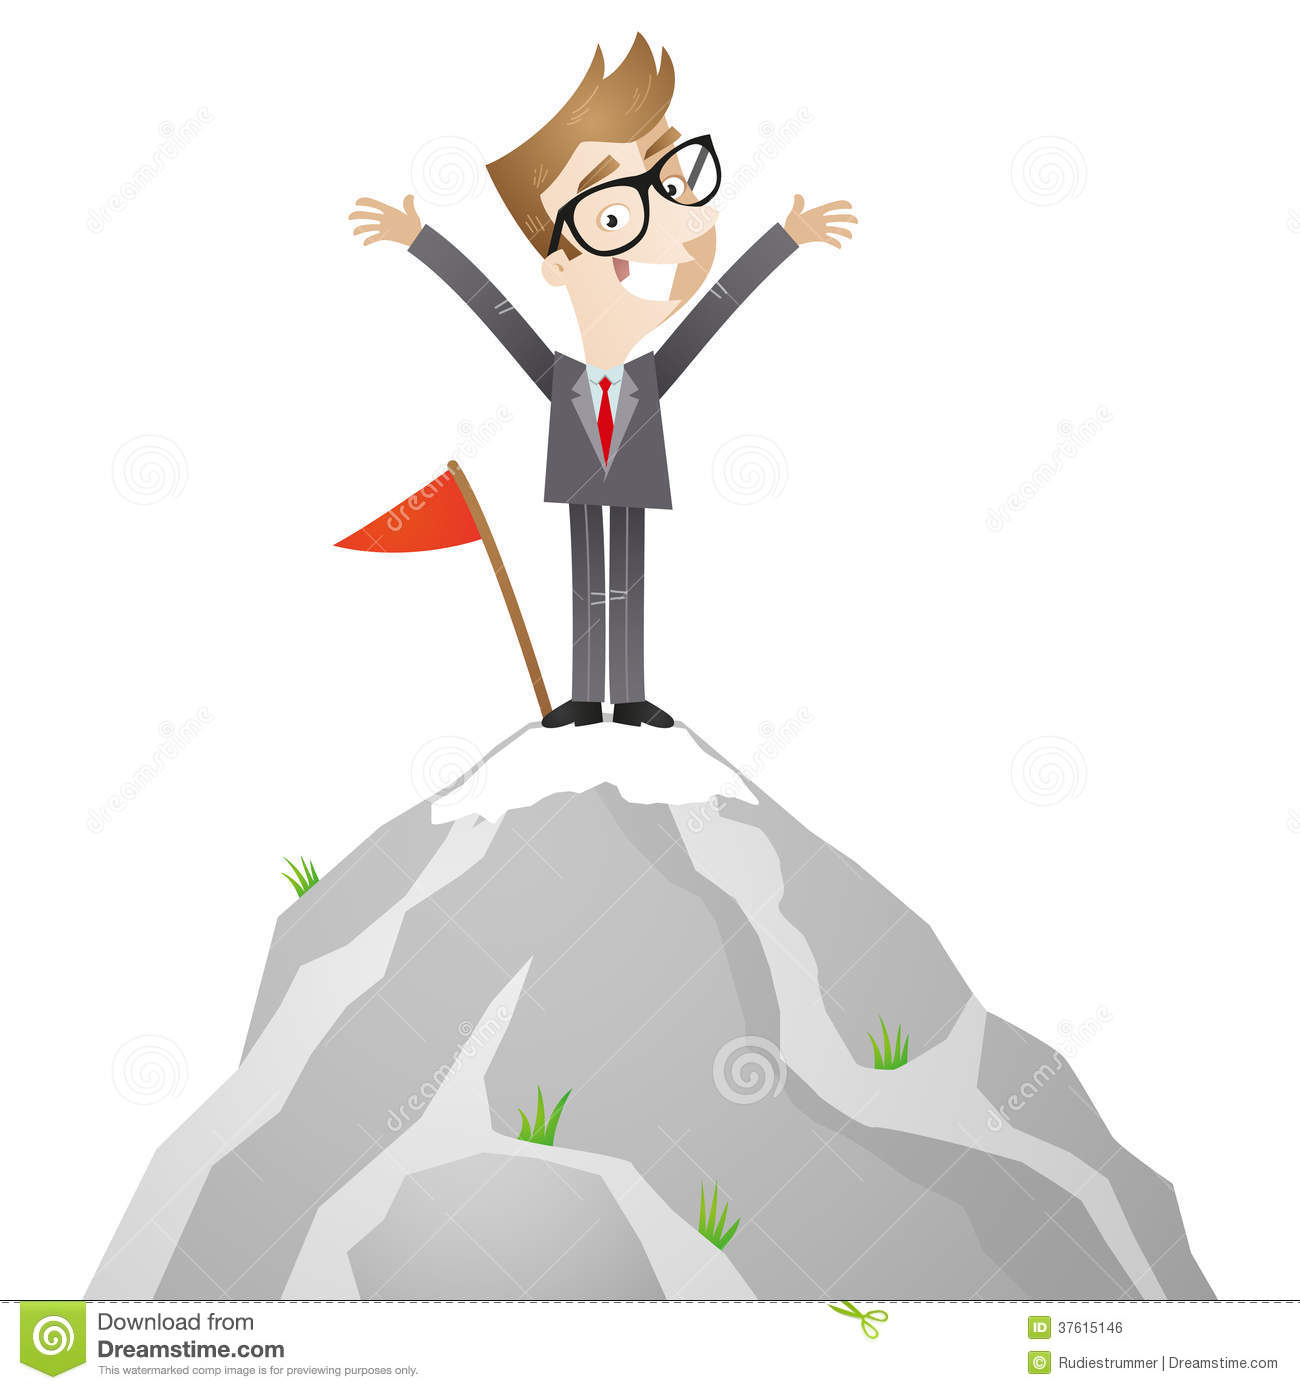 Standing on top clipart - Clipground